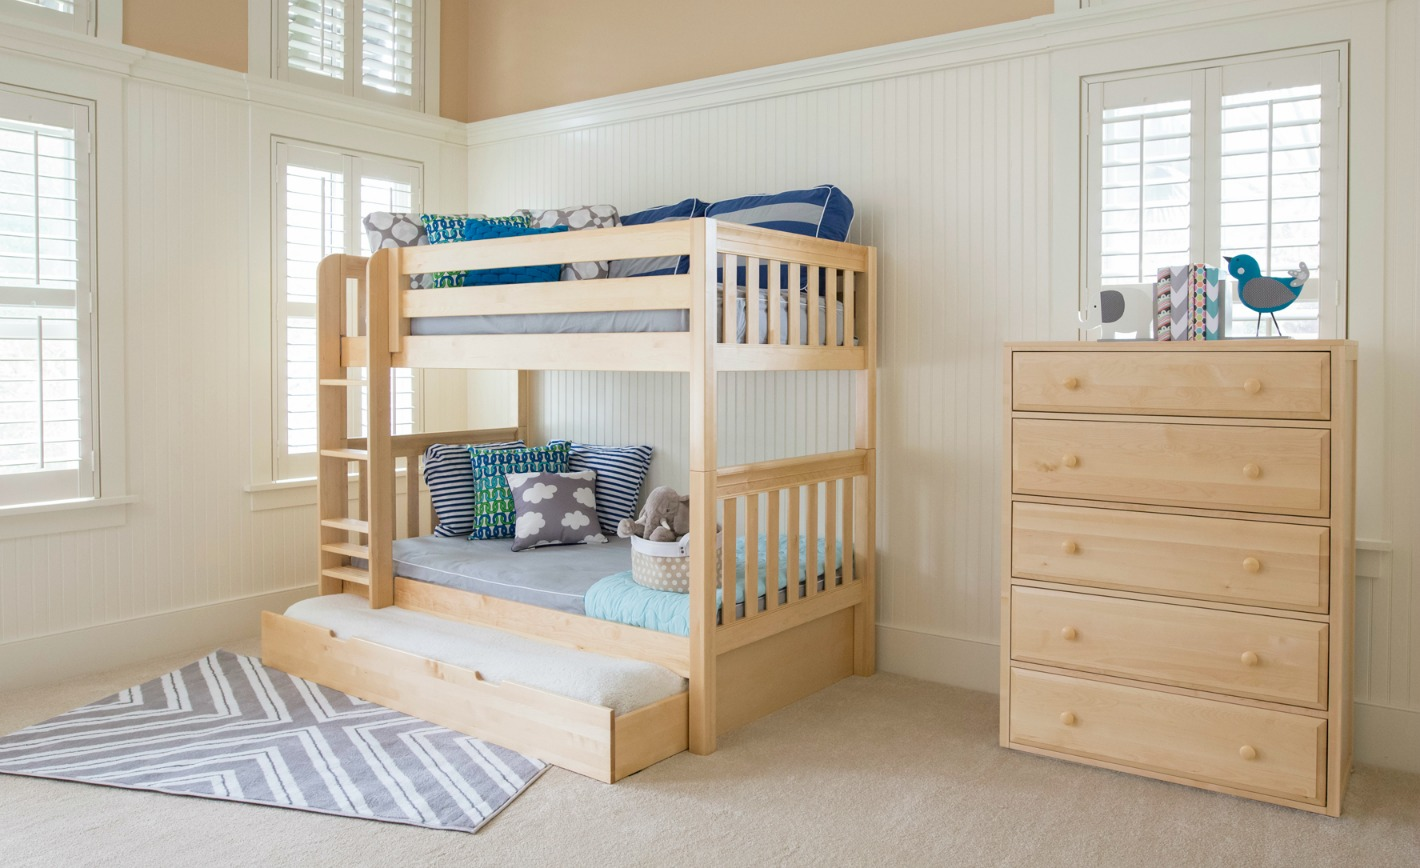 Kids Bedroom Furniture from Maxtrix